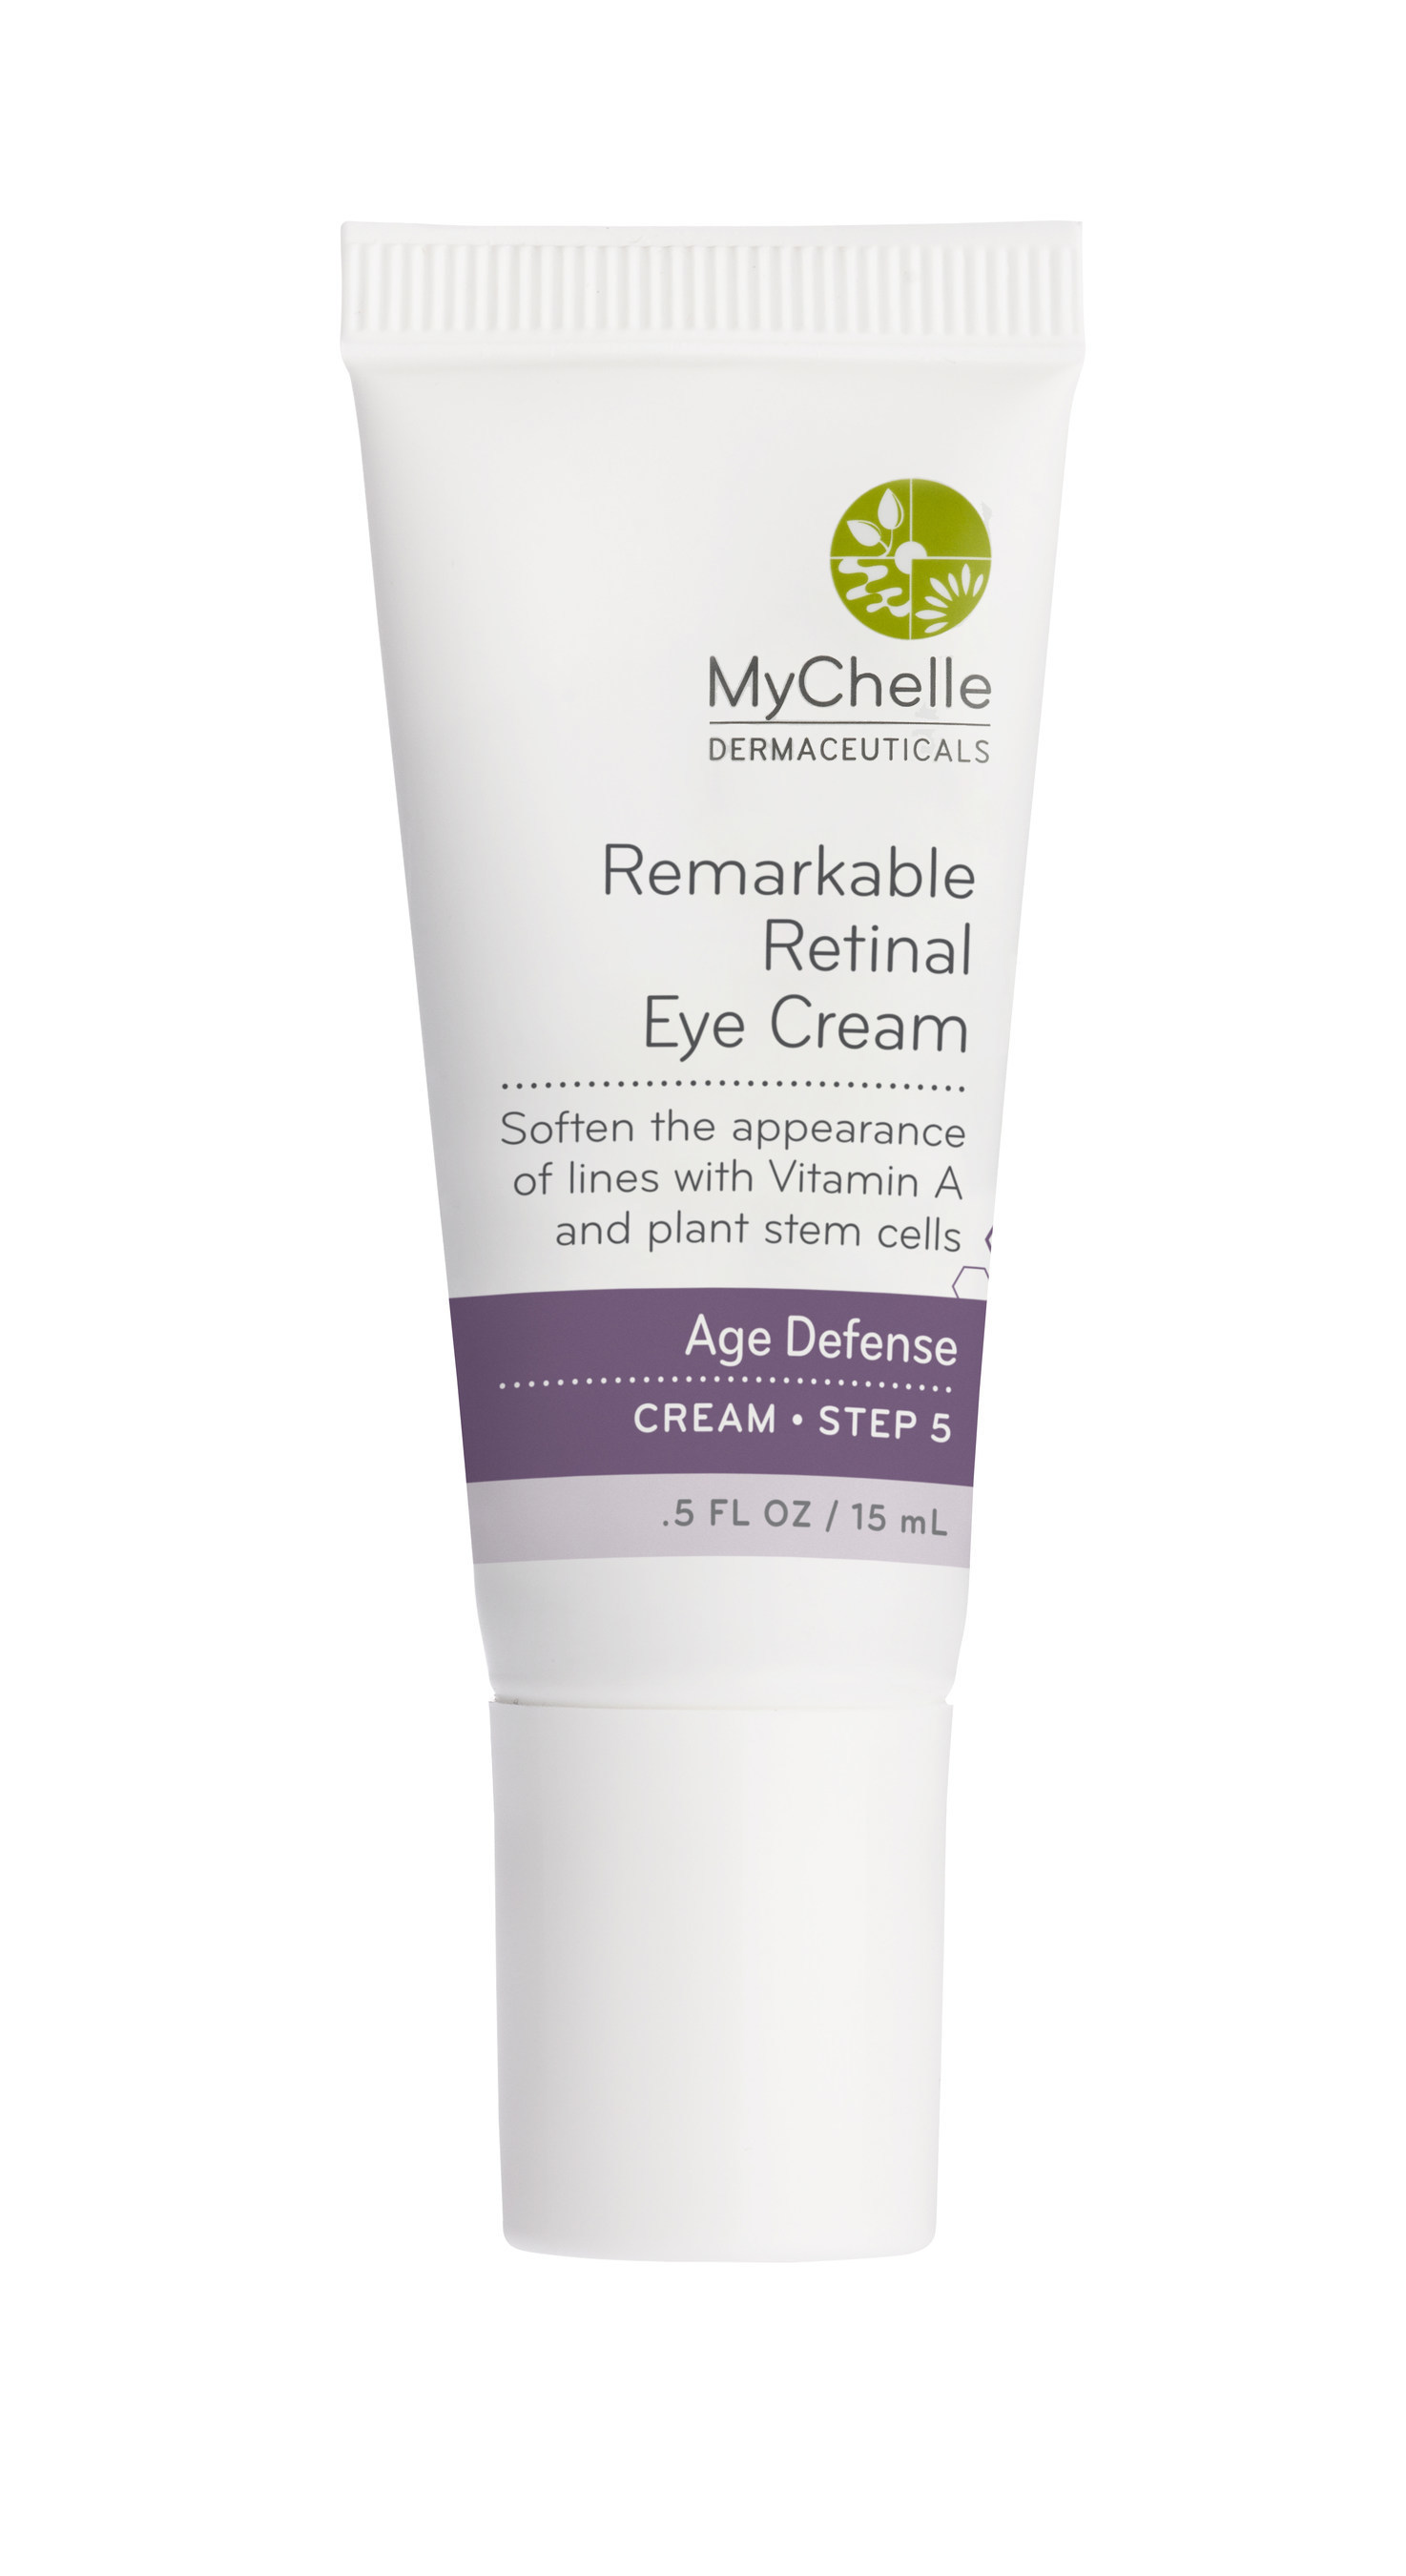 The MyChelle Remarkable Retinal Eye Cream (MSRP $35.50/.5 oz.) is gentle, ultra-moisturizing and highly effective in treating the delicate skin around the eyes. Crocus Chrysanthus Bulb Extract is used to stimulate natural collagen production and Citrustem(R) Orange Plant Stem Cells are proven to increase cellular activity to strengthen skin elasticity. Learn more at www.mychelle.com